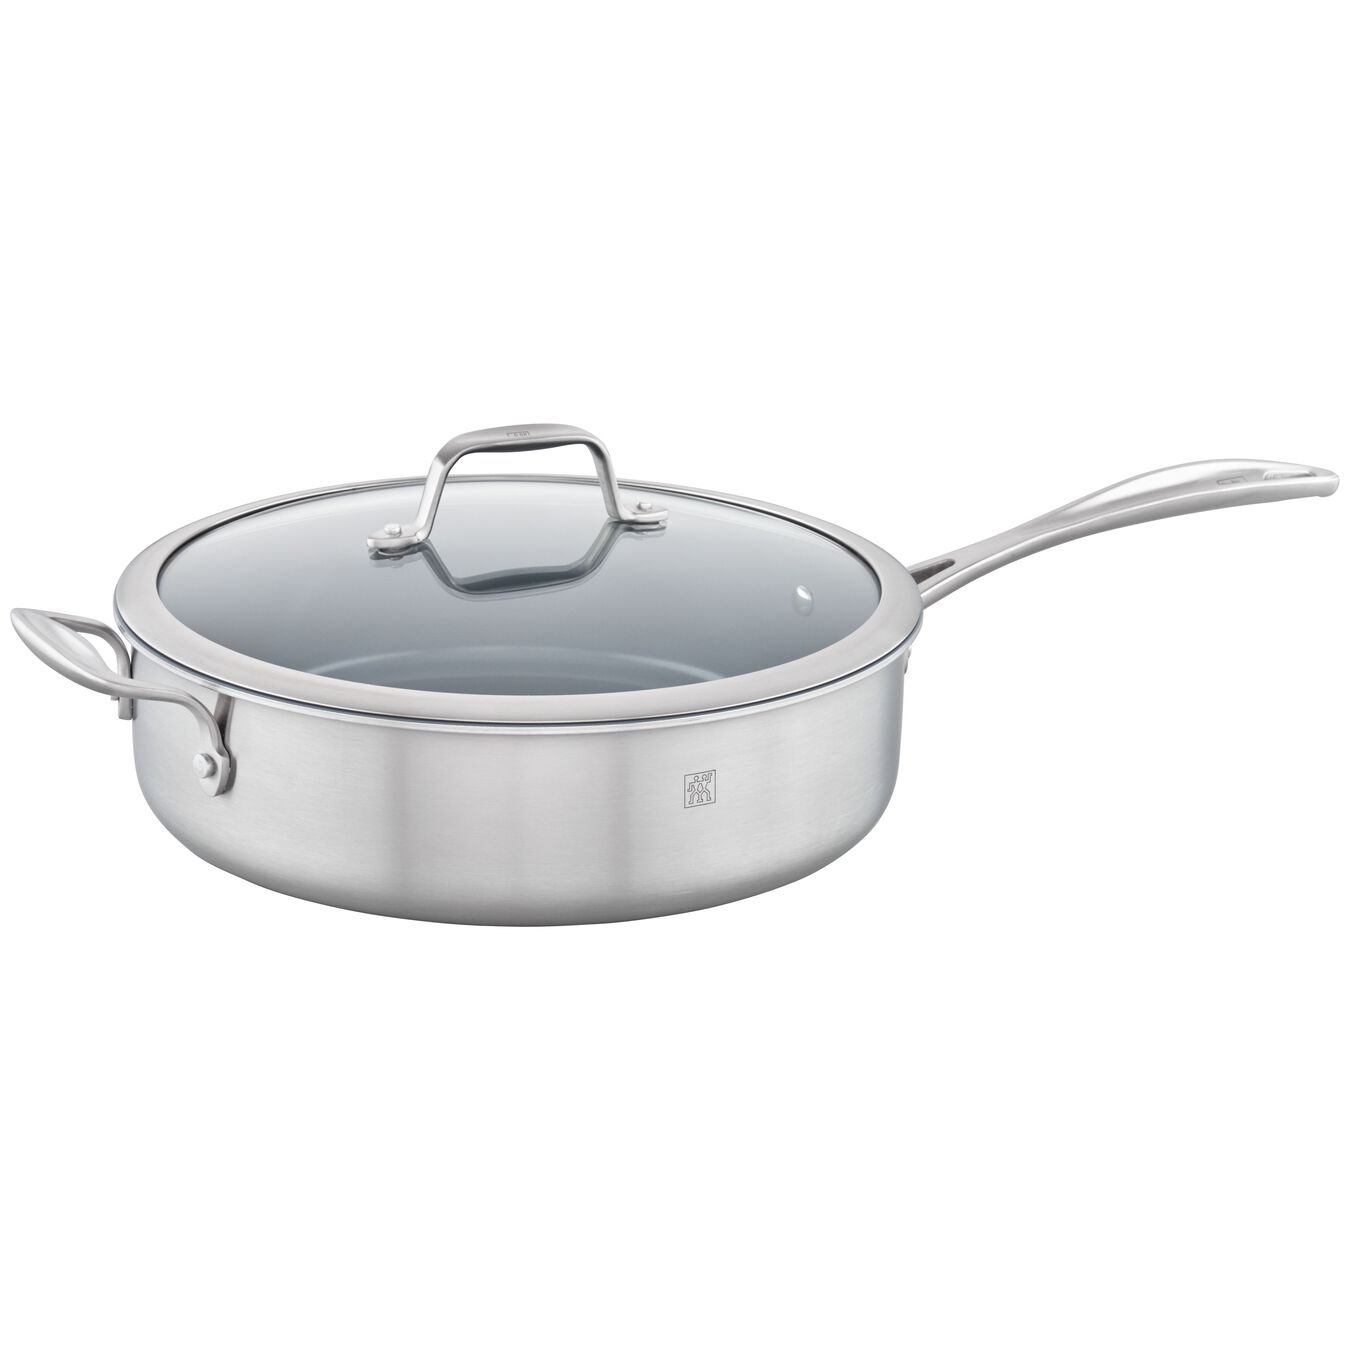 3-ply 5-qt Stainless Steel Ceramic Nonstick Saute Pan,,large 1